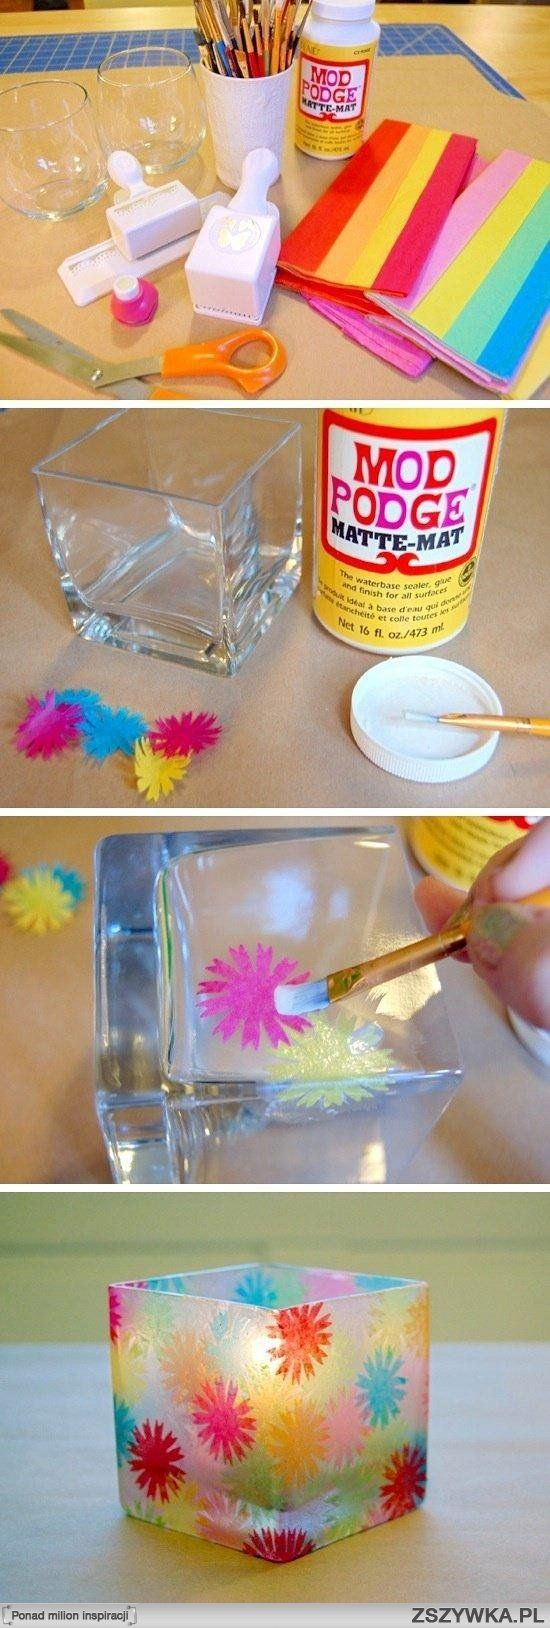 What a fabulous idea and so easy to do all you need is Modge Podge - or if you cannot get any some slightly watered down PVA glue will do the trick